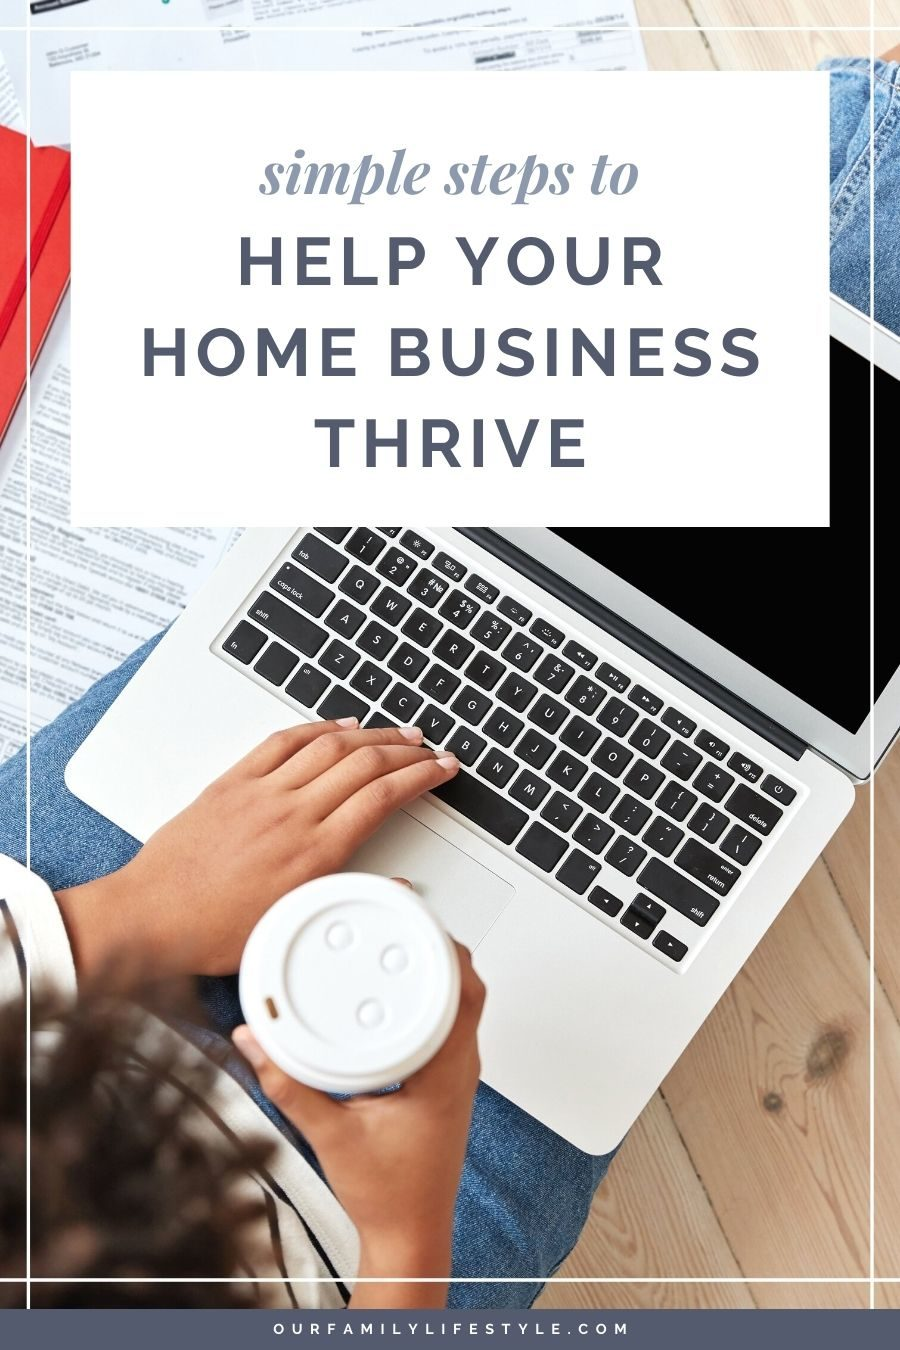 Simple Steps To Help Your Home Business Thrive